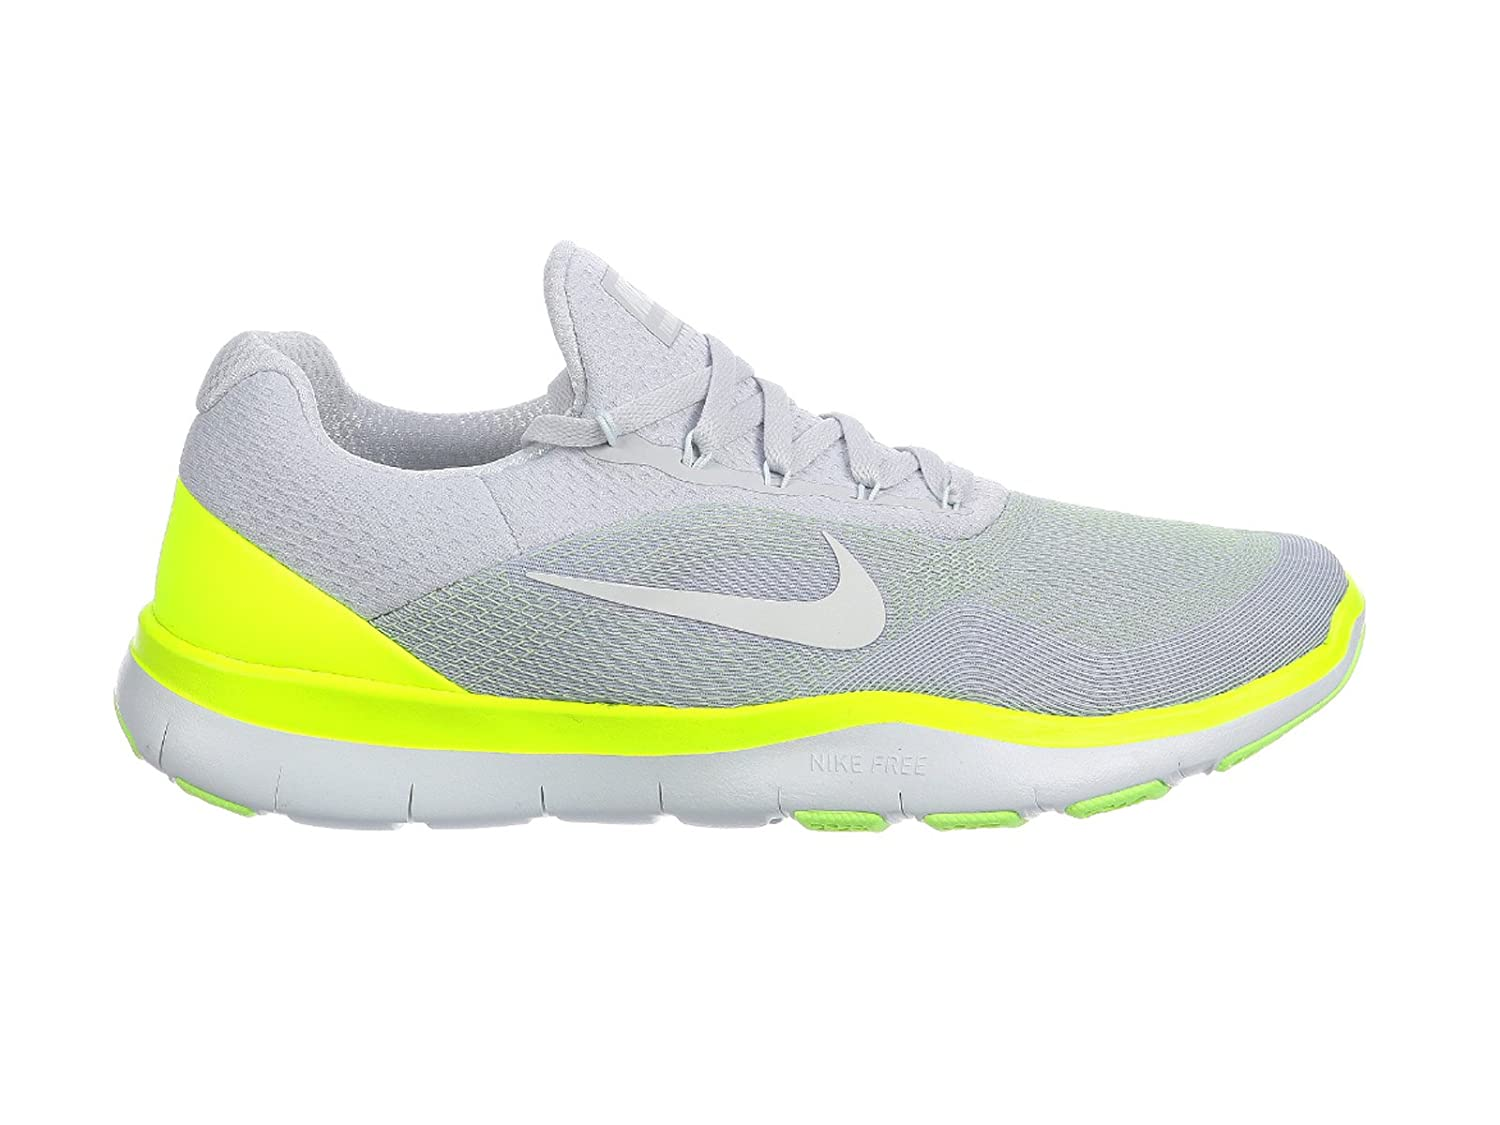 573aabaaccc0c Amazon.com | Nike Free Trainer v7 Pure Platinum/Volt/Ghost Green/Off-White  Men's Cross Training Shoes Size 9 | Running